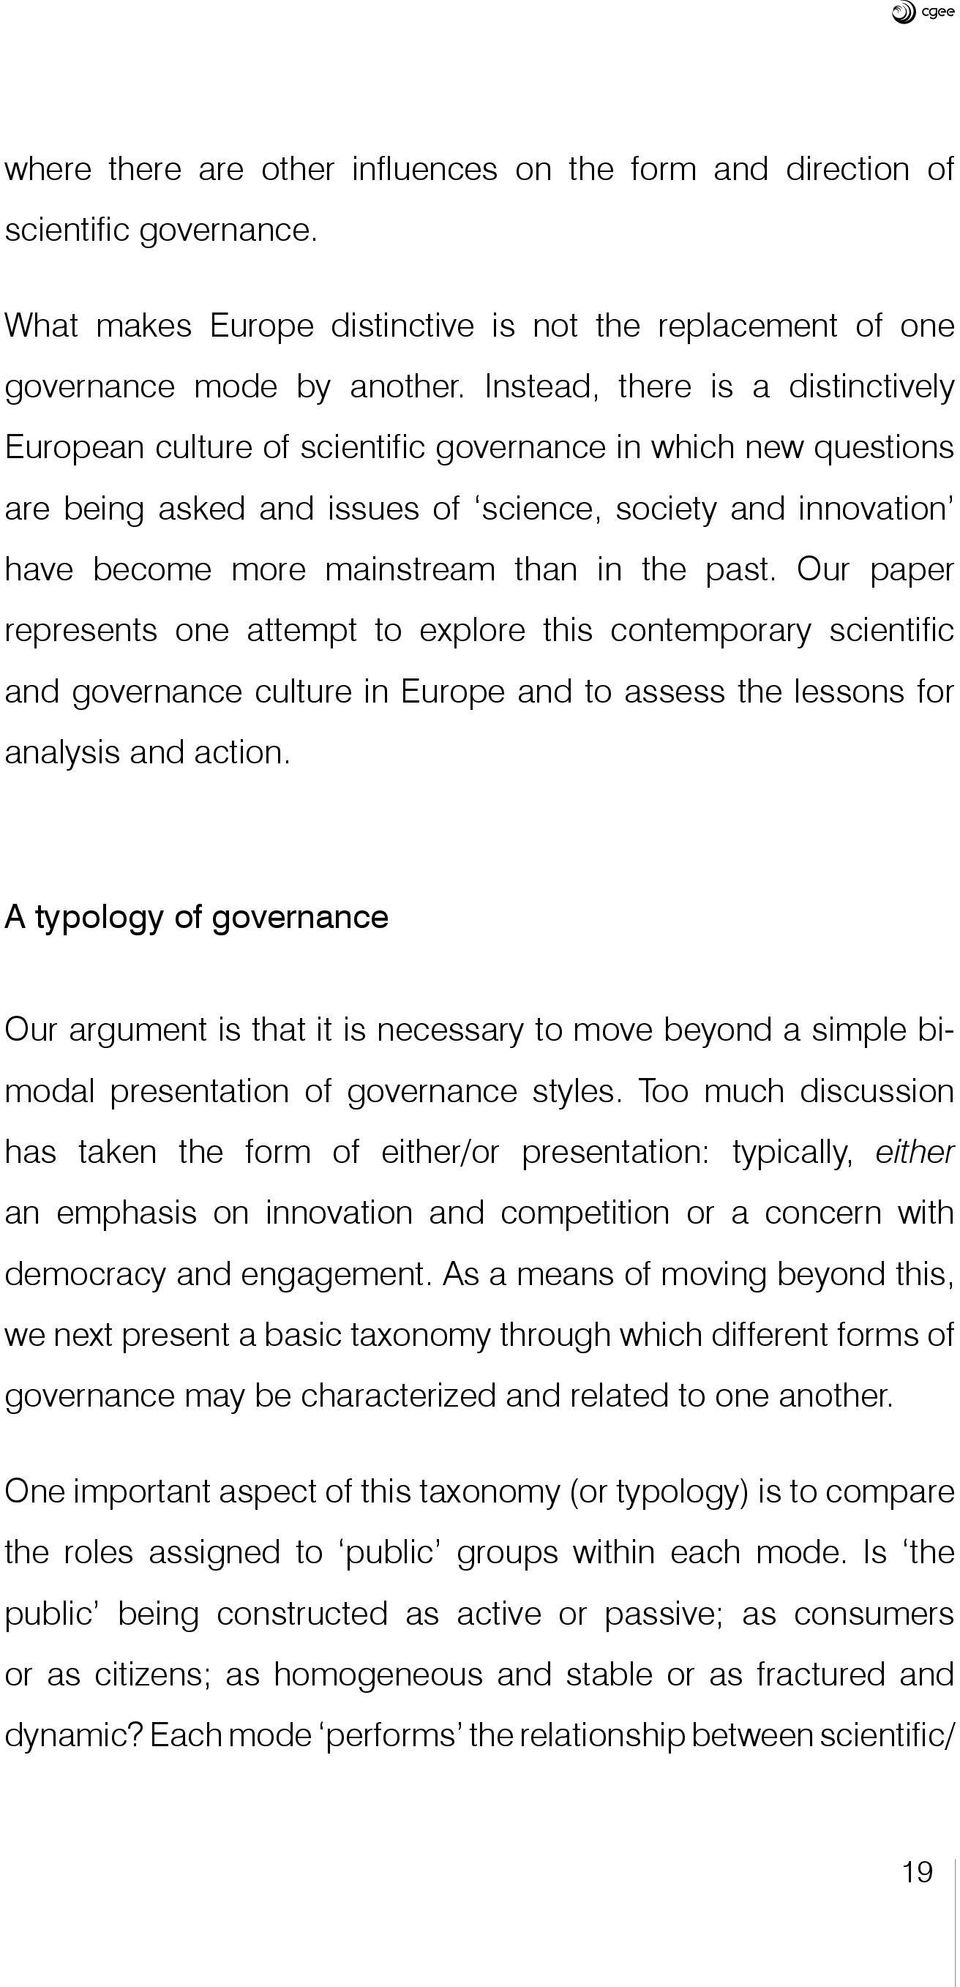 the past. Our paper represents one attempt to explore this contemporary scientific and governance culture in Europe and to assess the lessons for analysis and action.